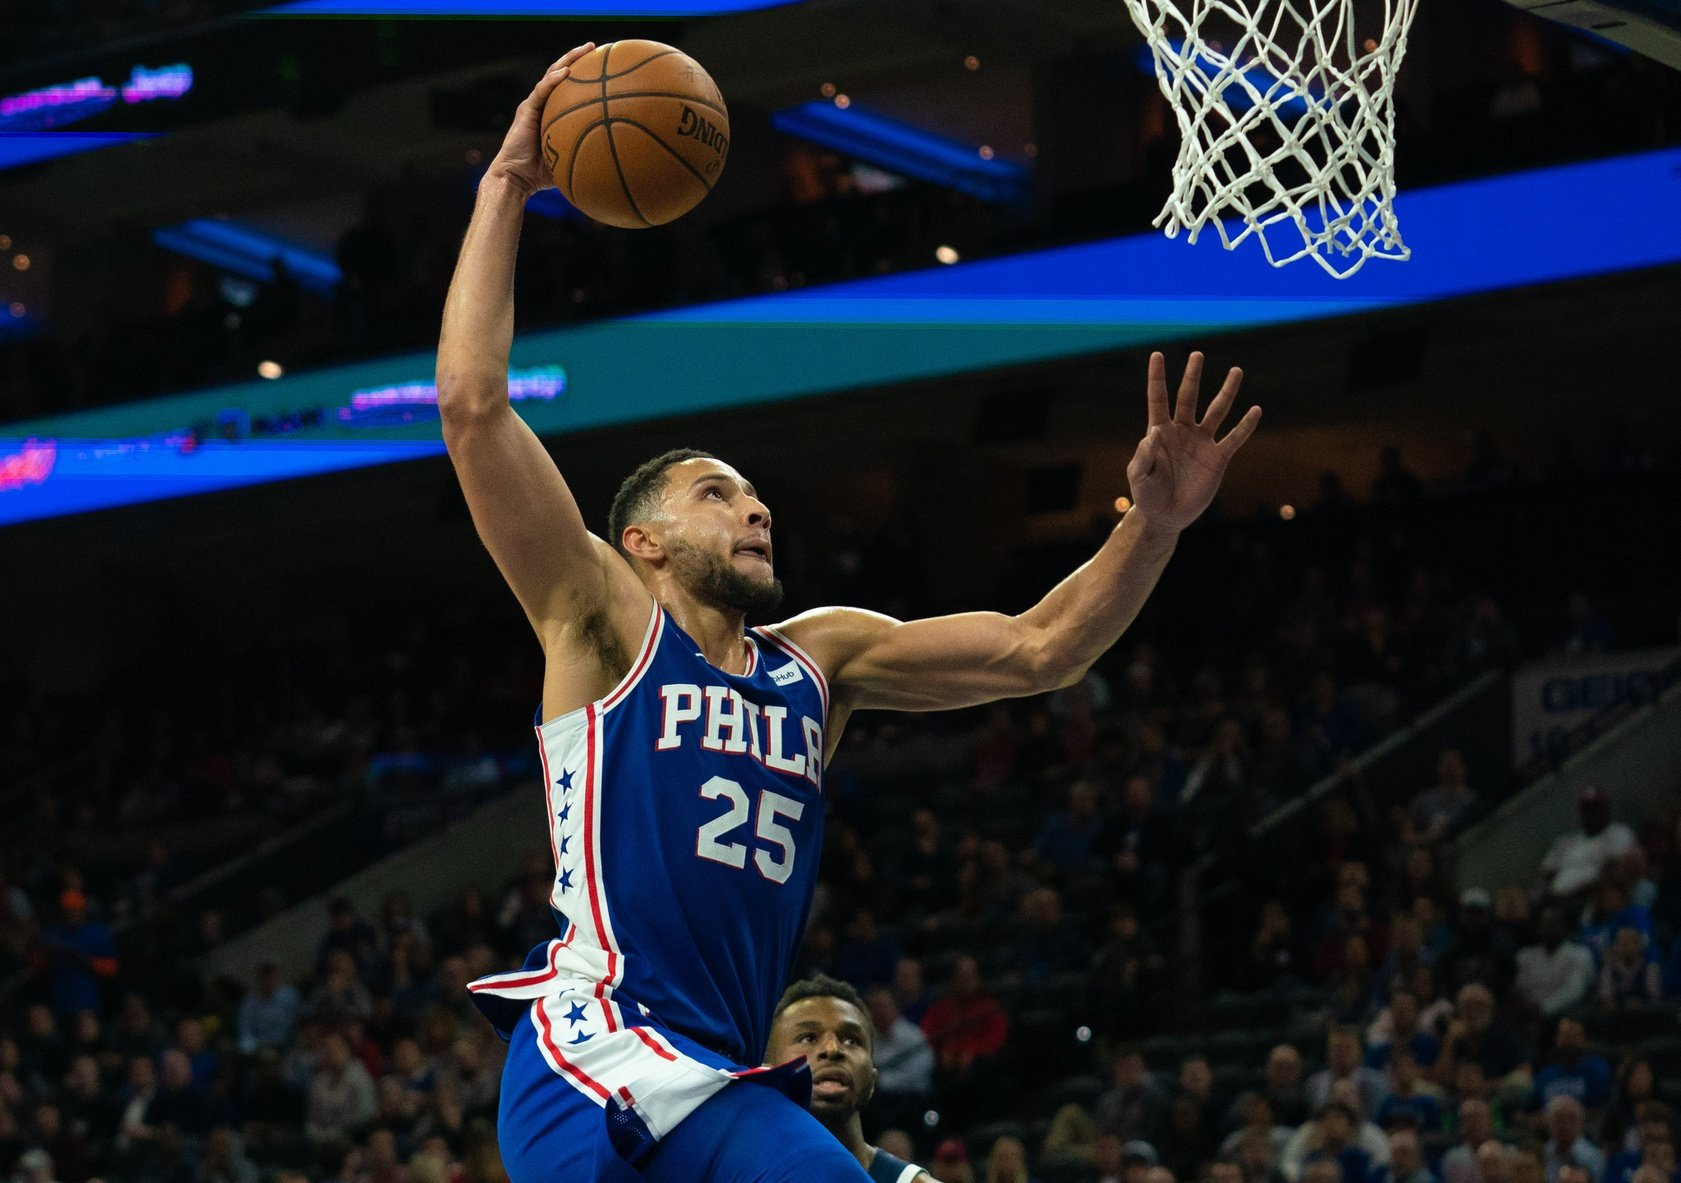 The No. 1 Pick for Ben Simmons: How and Why | Zone Coverage